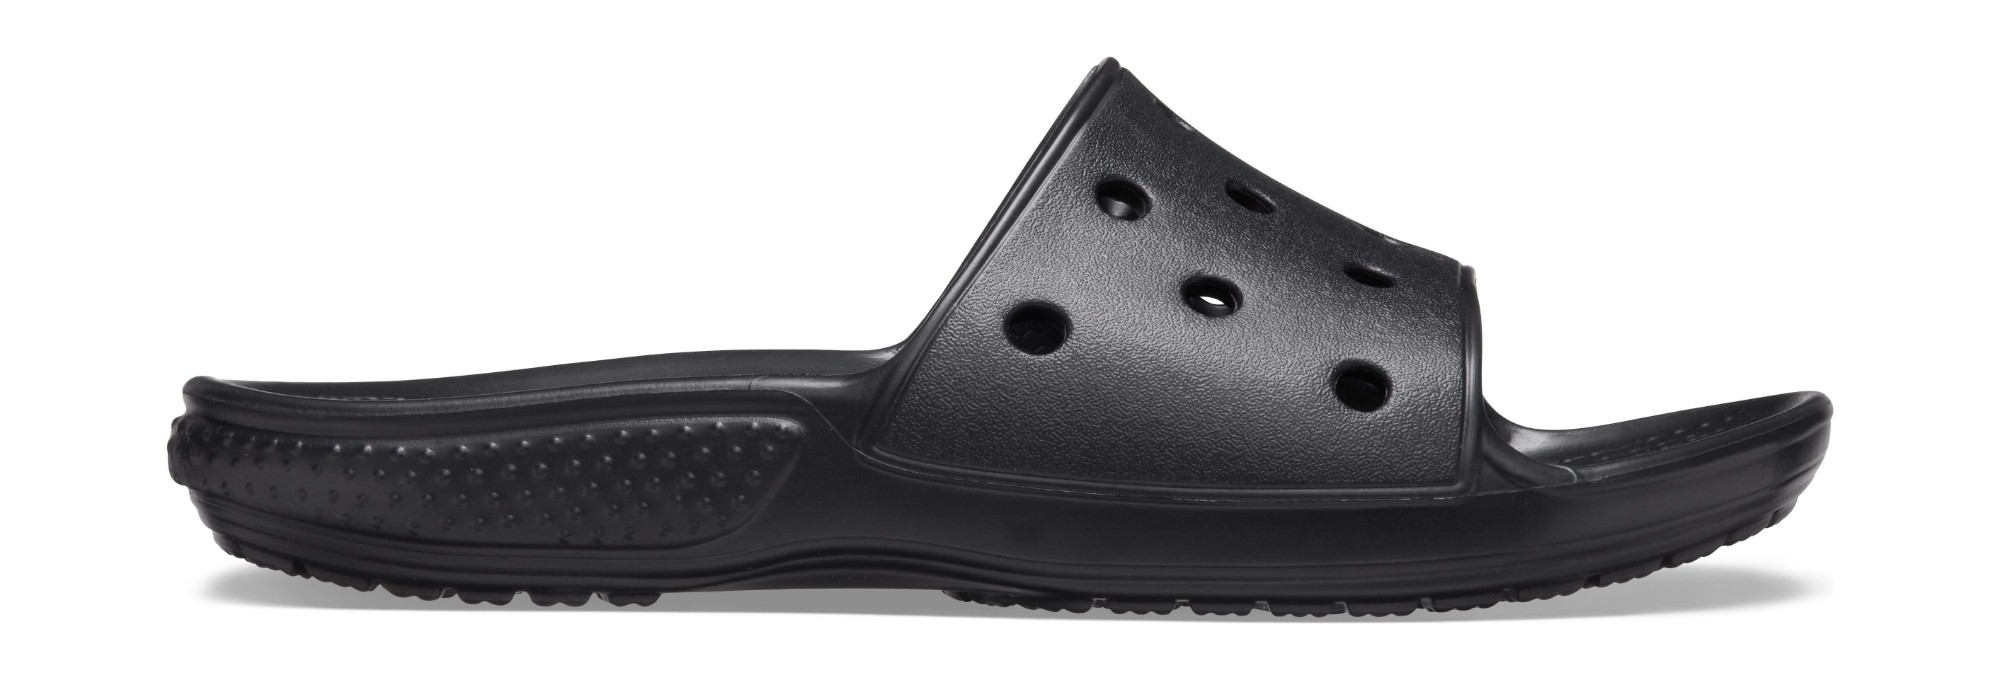 Crocs™ Classic Slide Kids Black 29